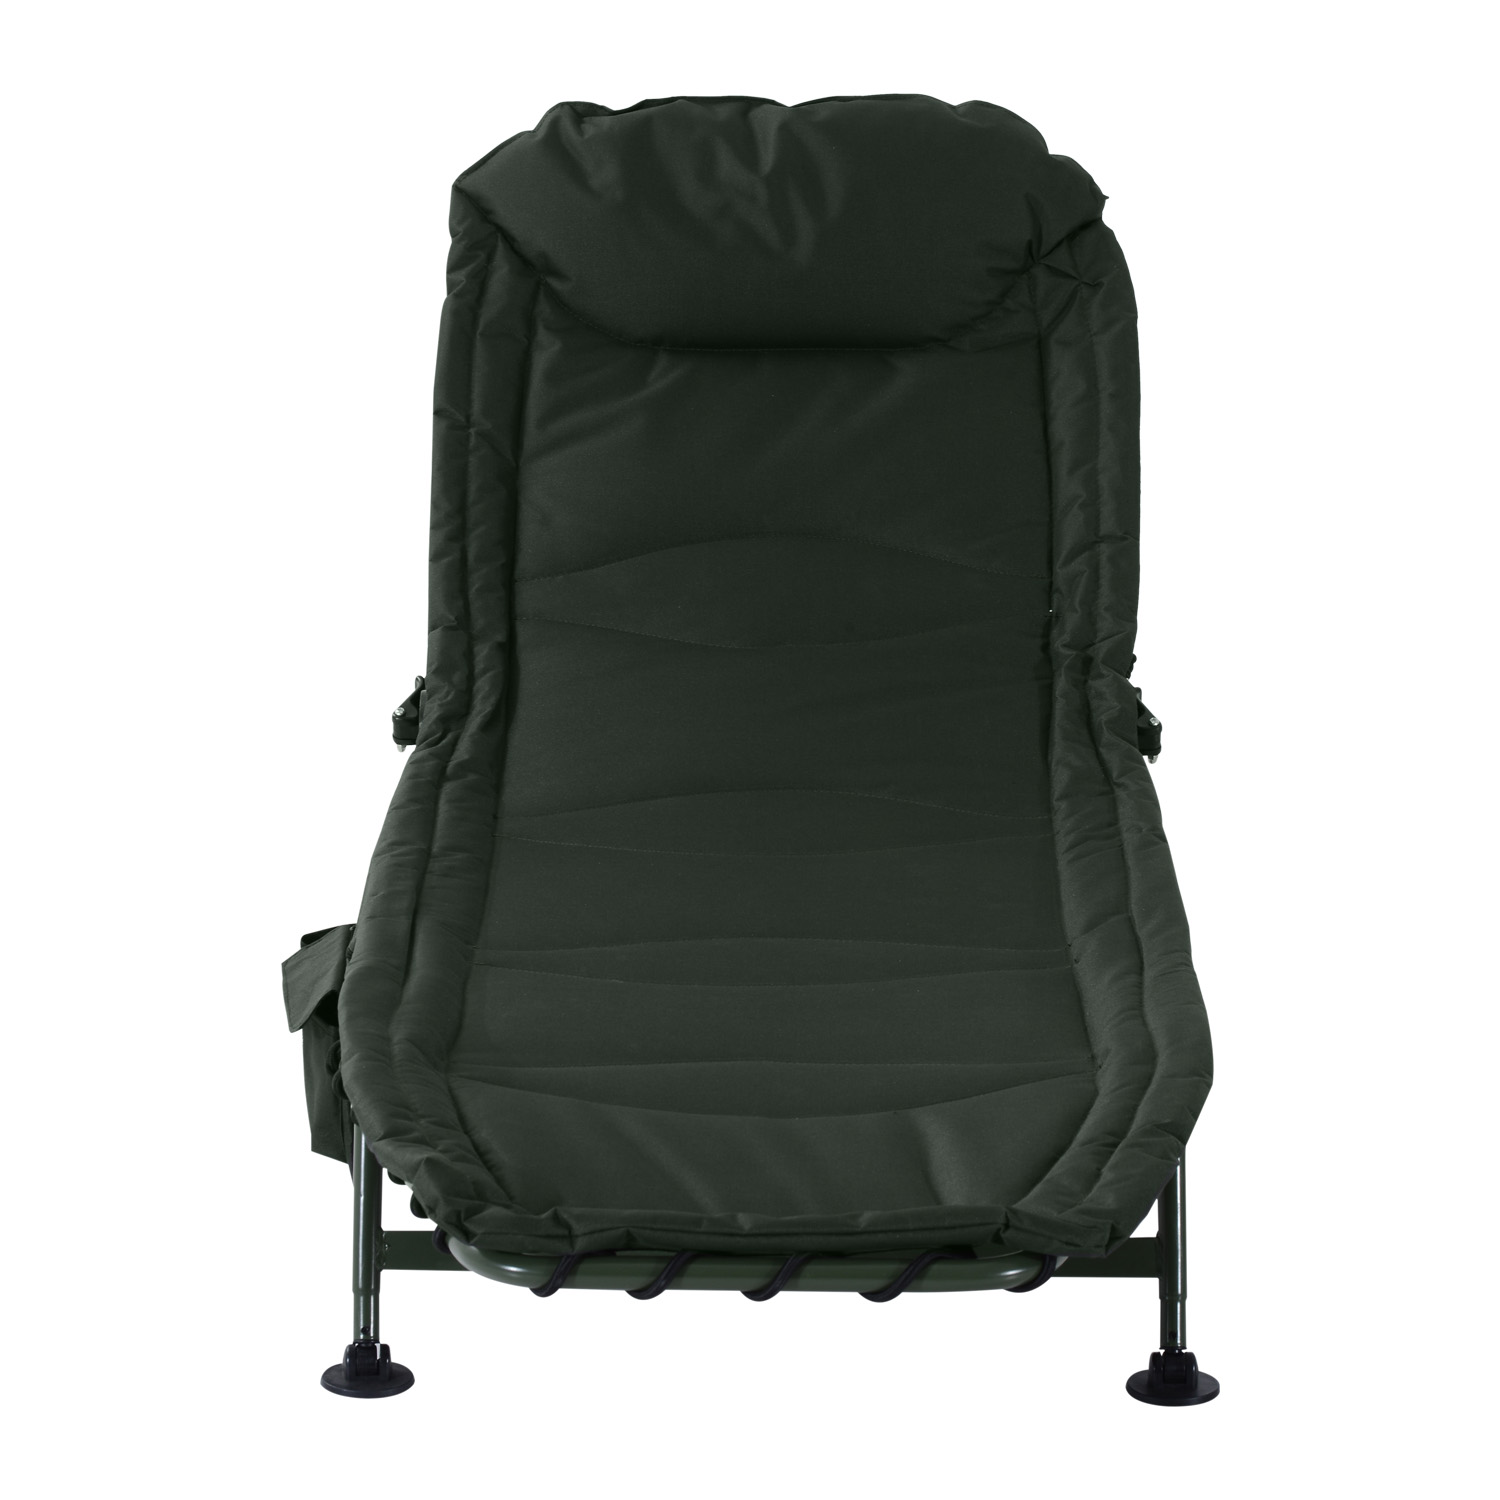 Outdoor Recliner Lounge Outsunny Folding Recliner Lounge Chair Outdoor Camping